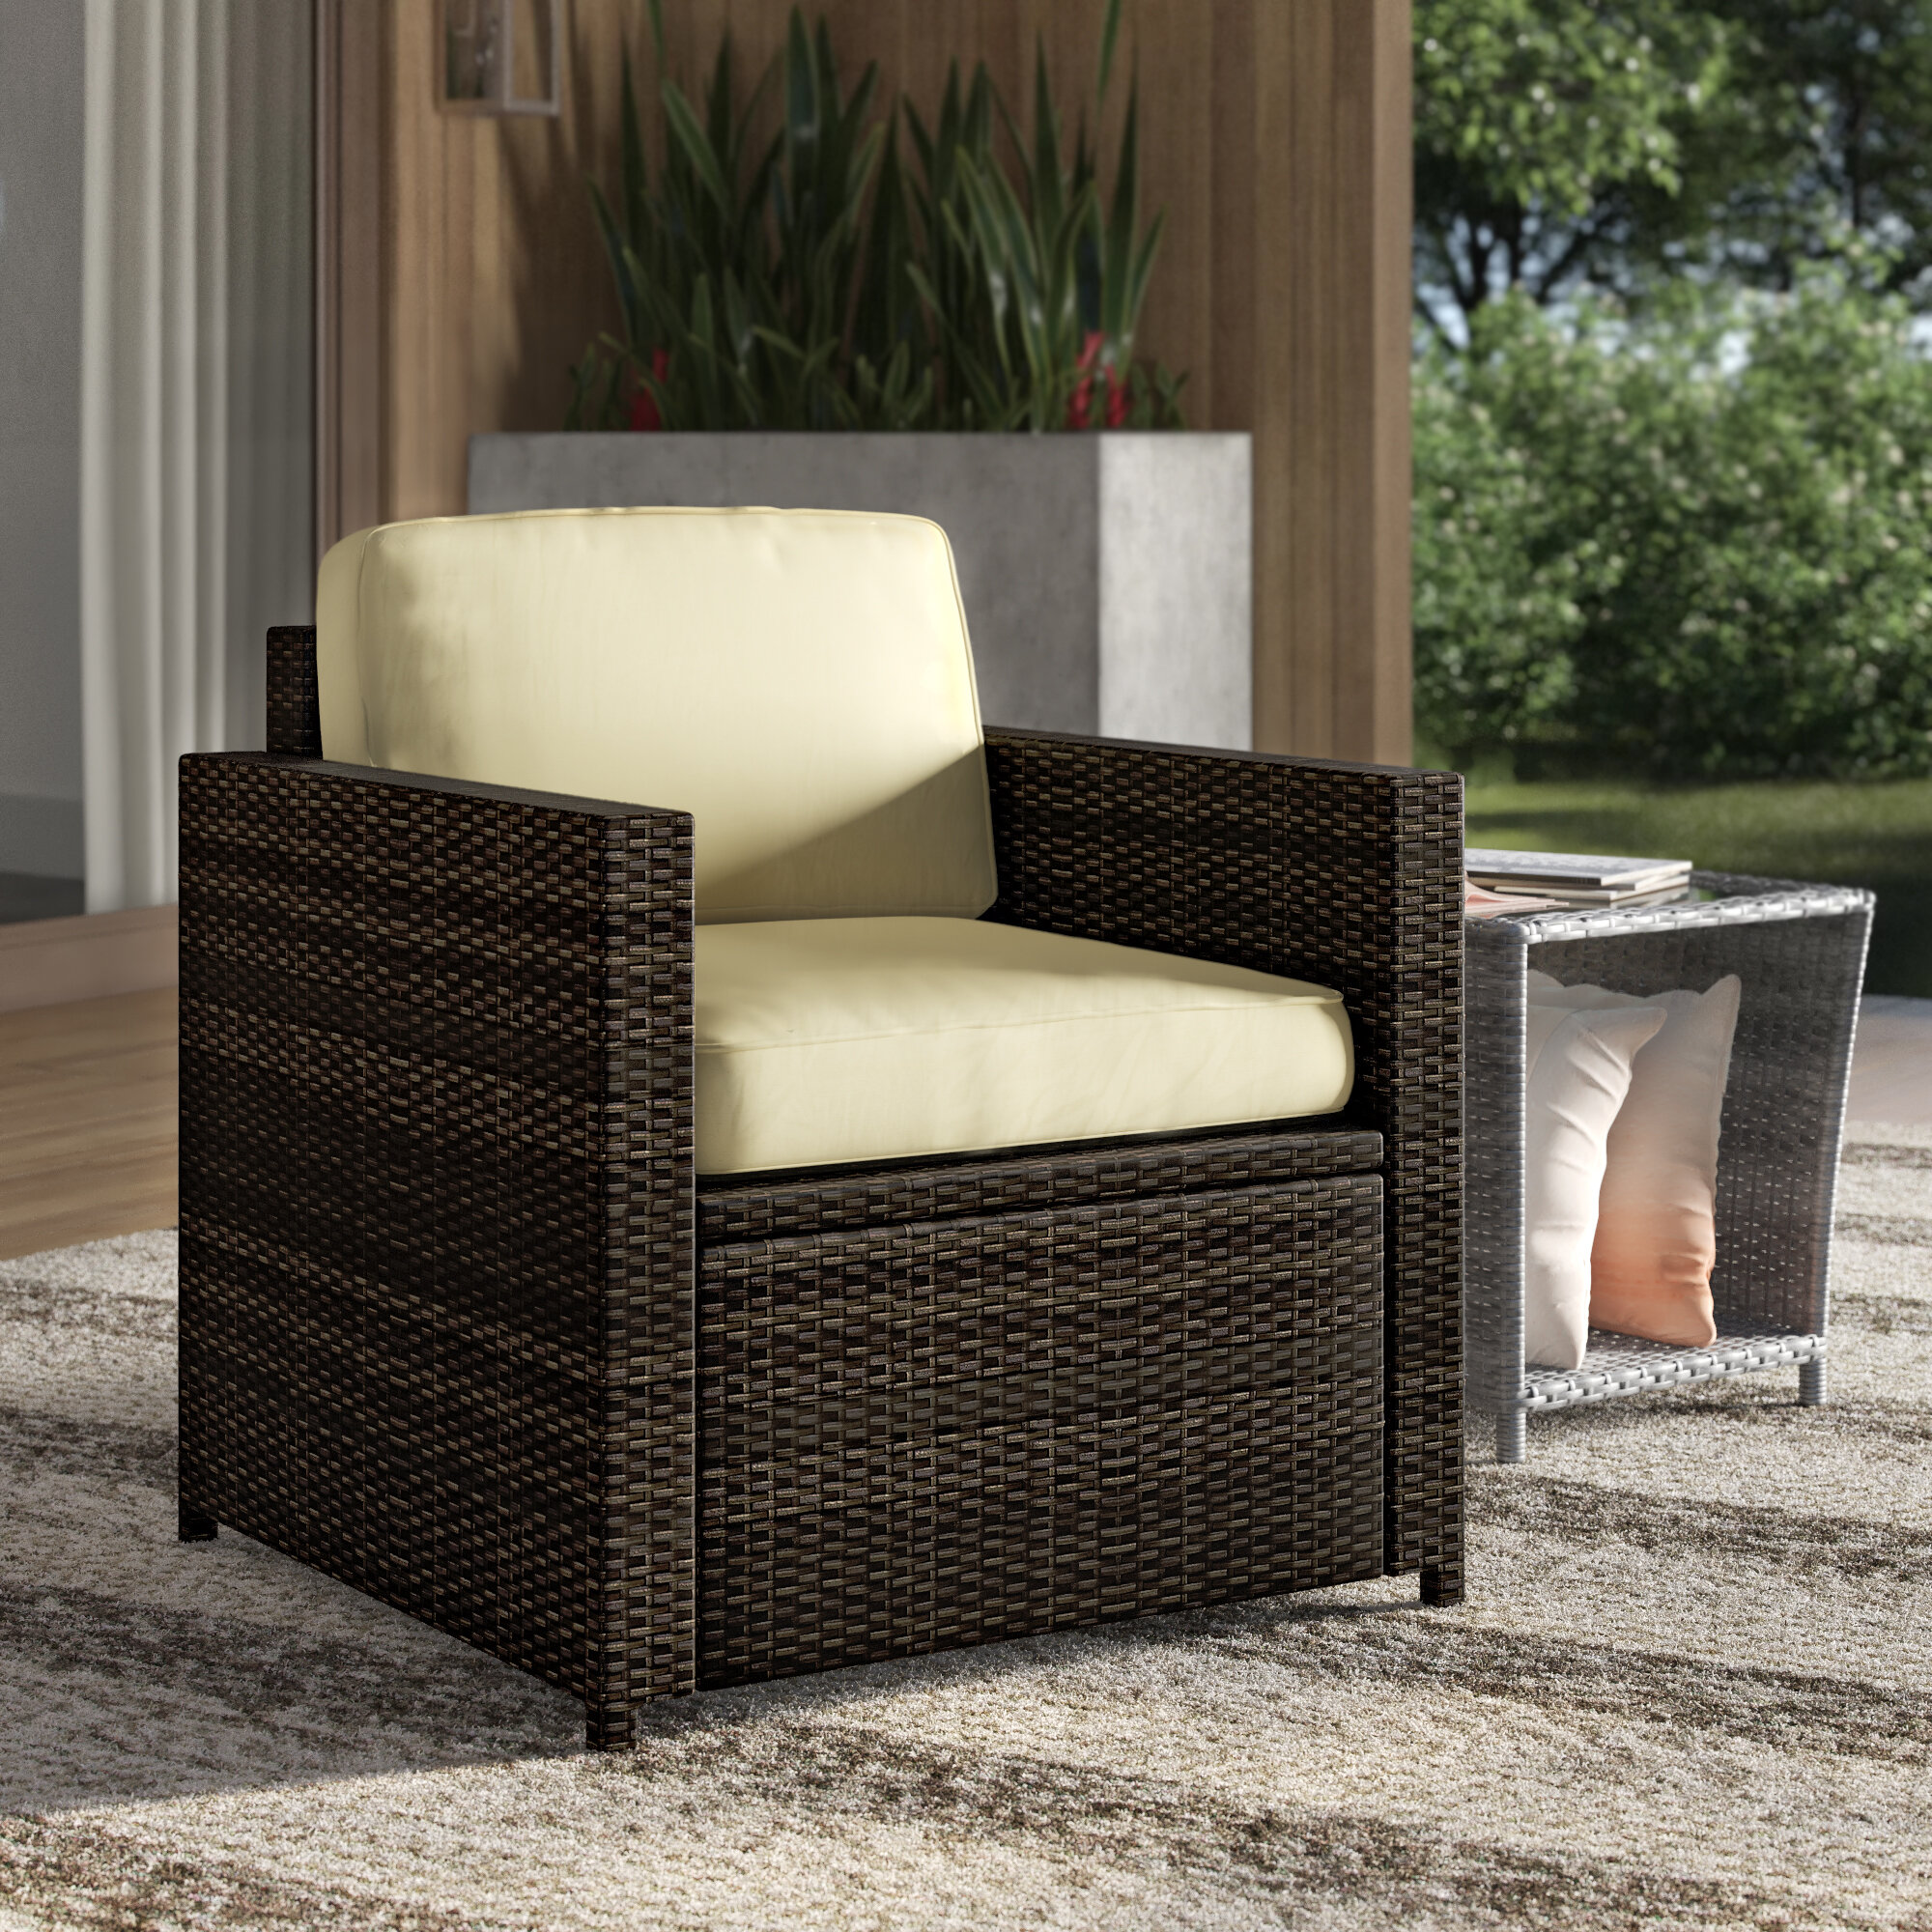 Mercury Row Belton Outdoor Wicker Deep Seating Patio Chair With Cushion Reviews Wayfair